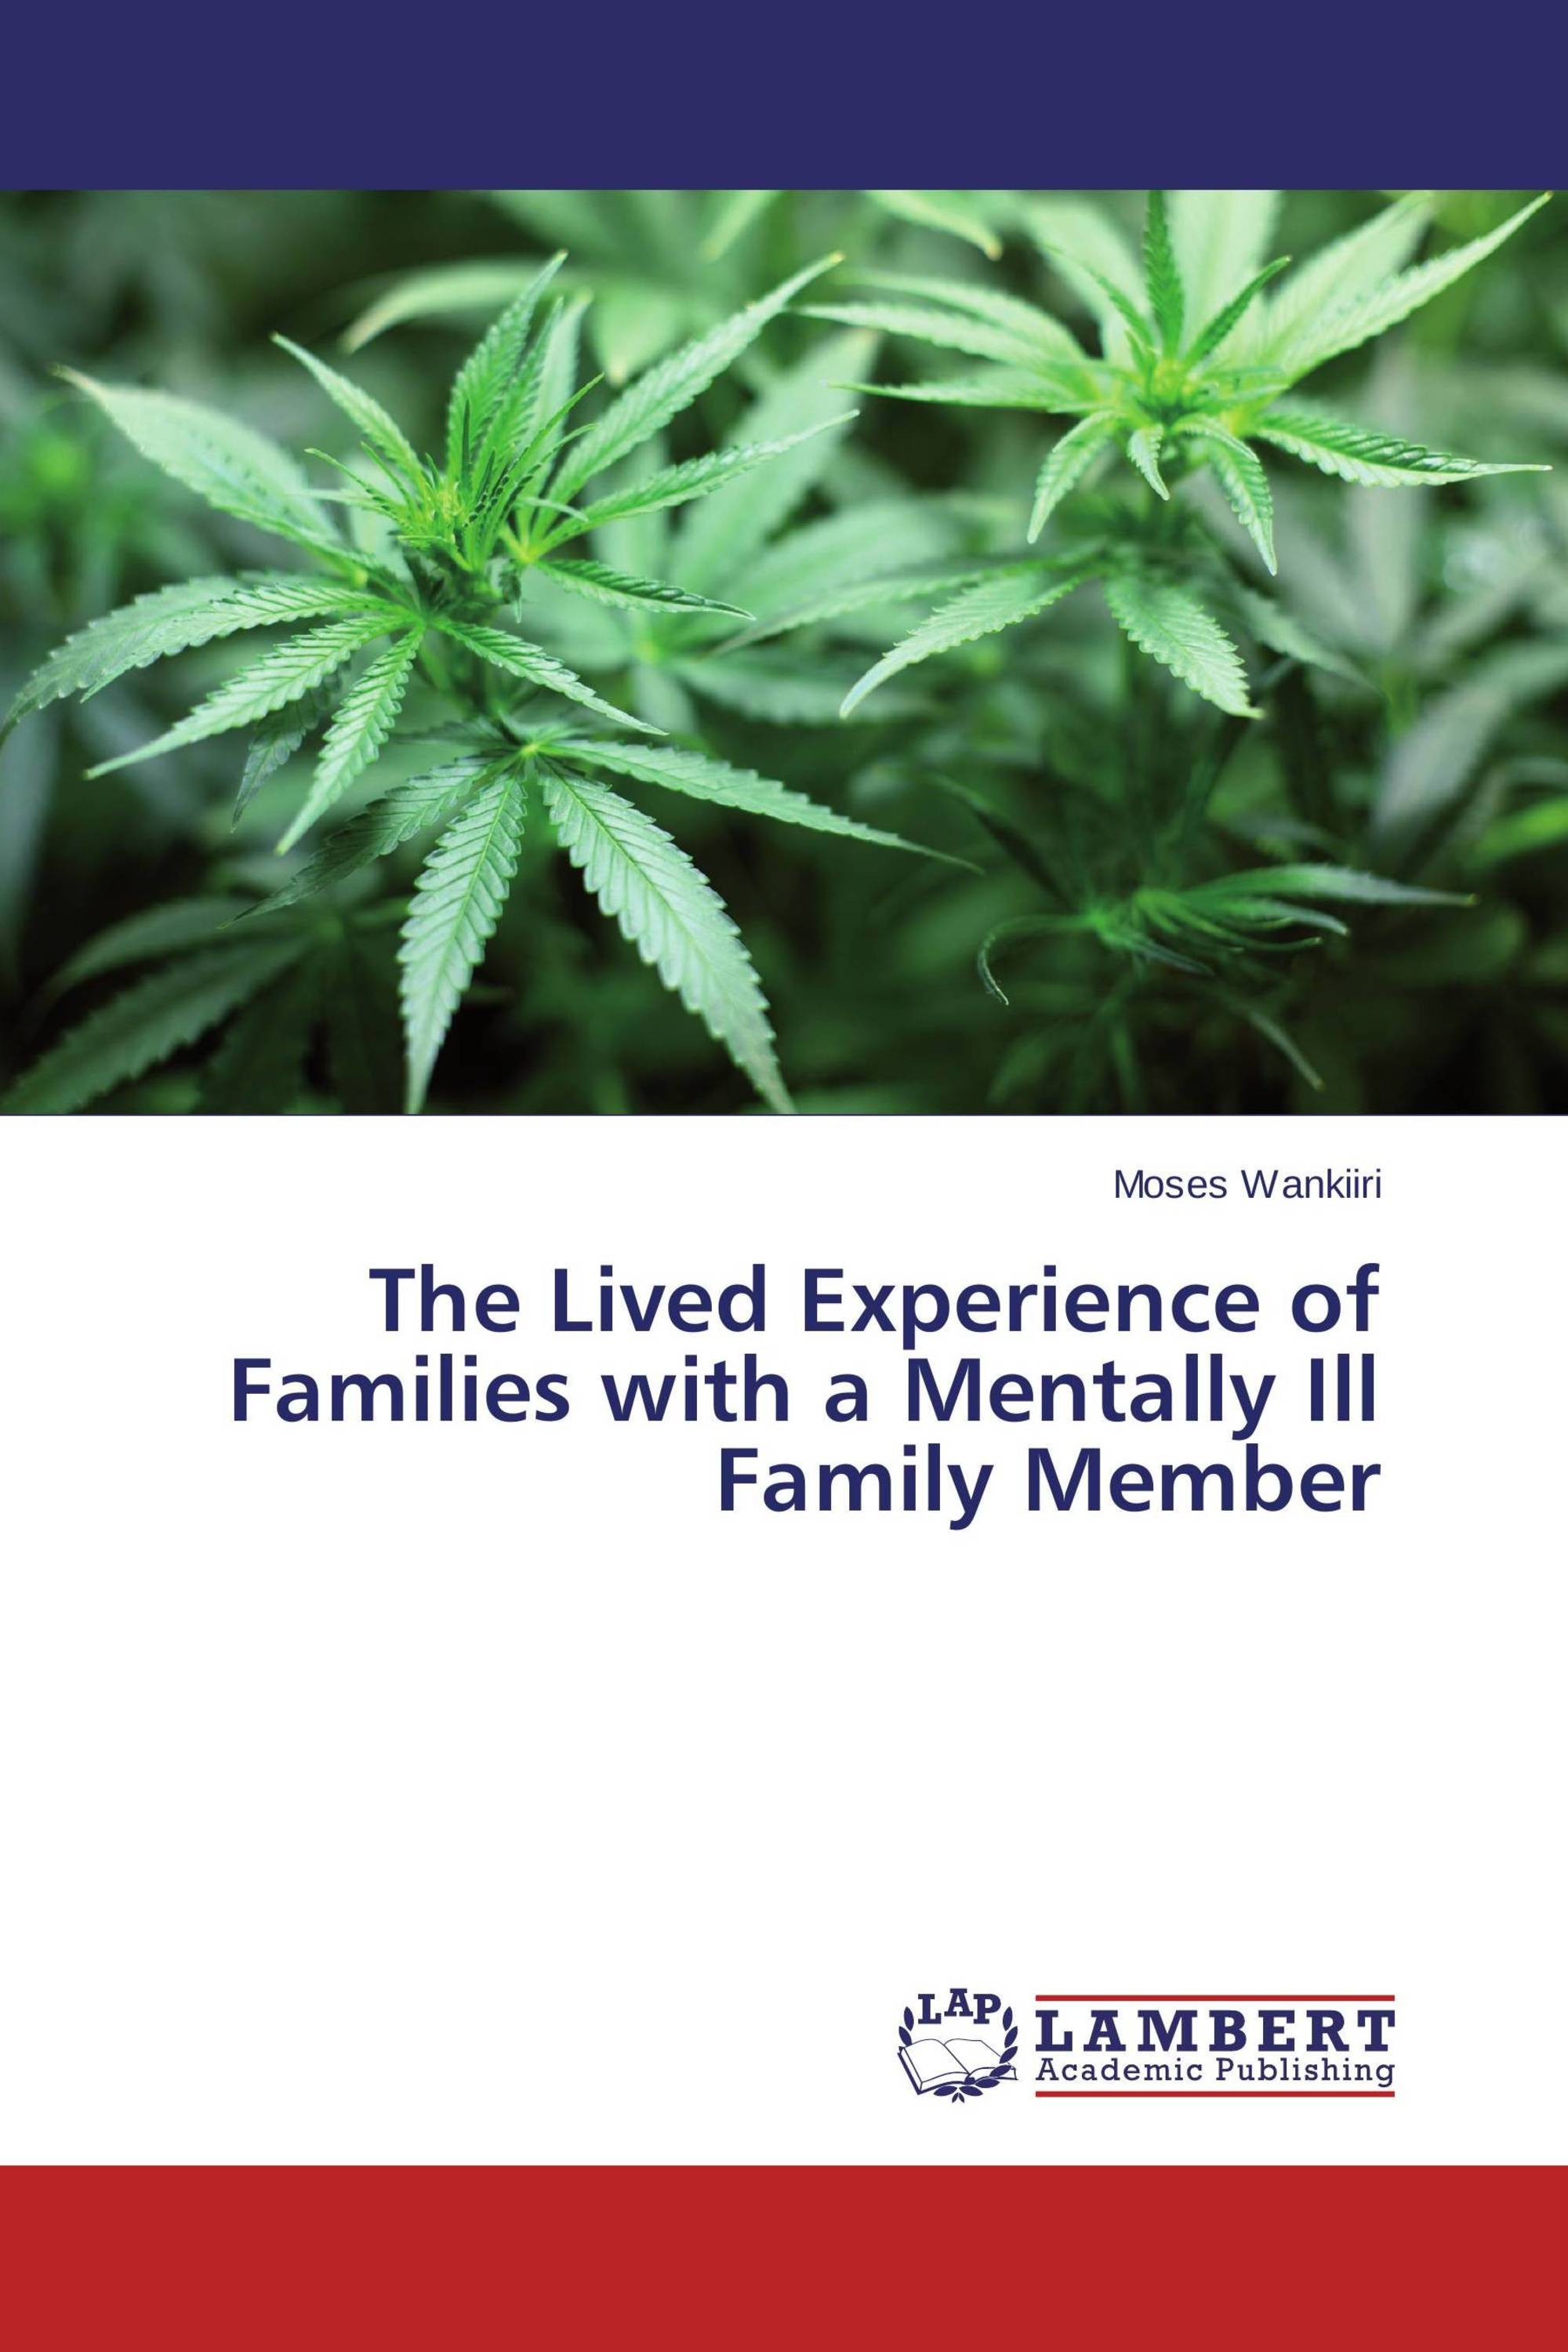 The Lived Experience of Families with a Mentally Ill Family Member